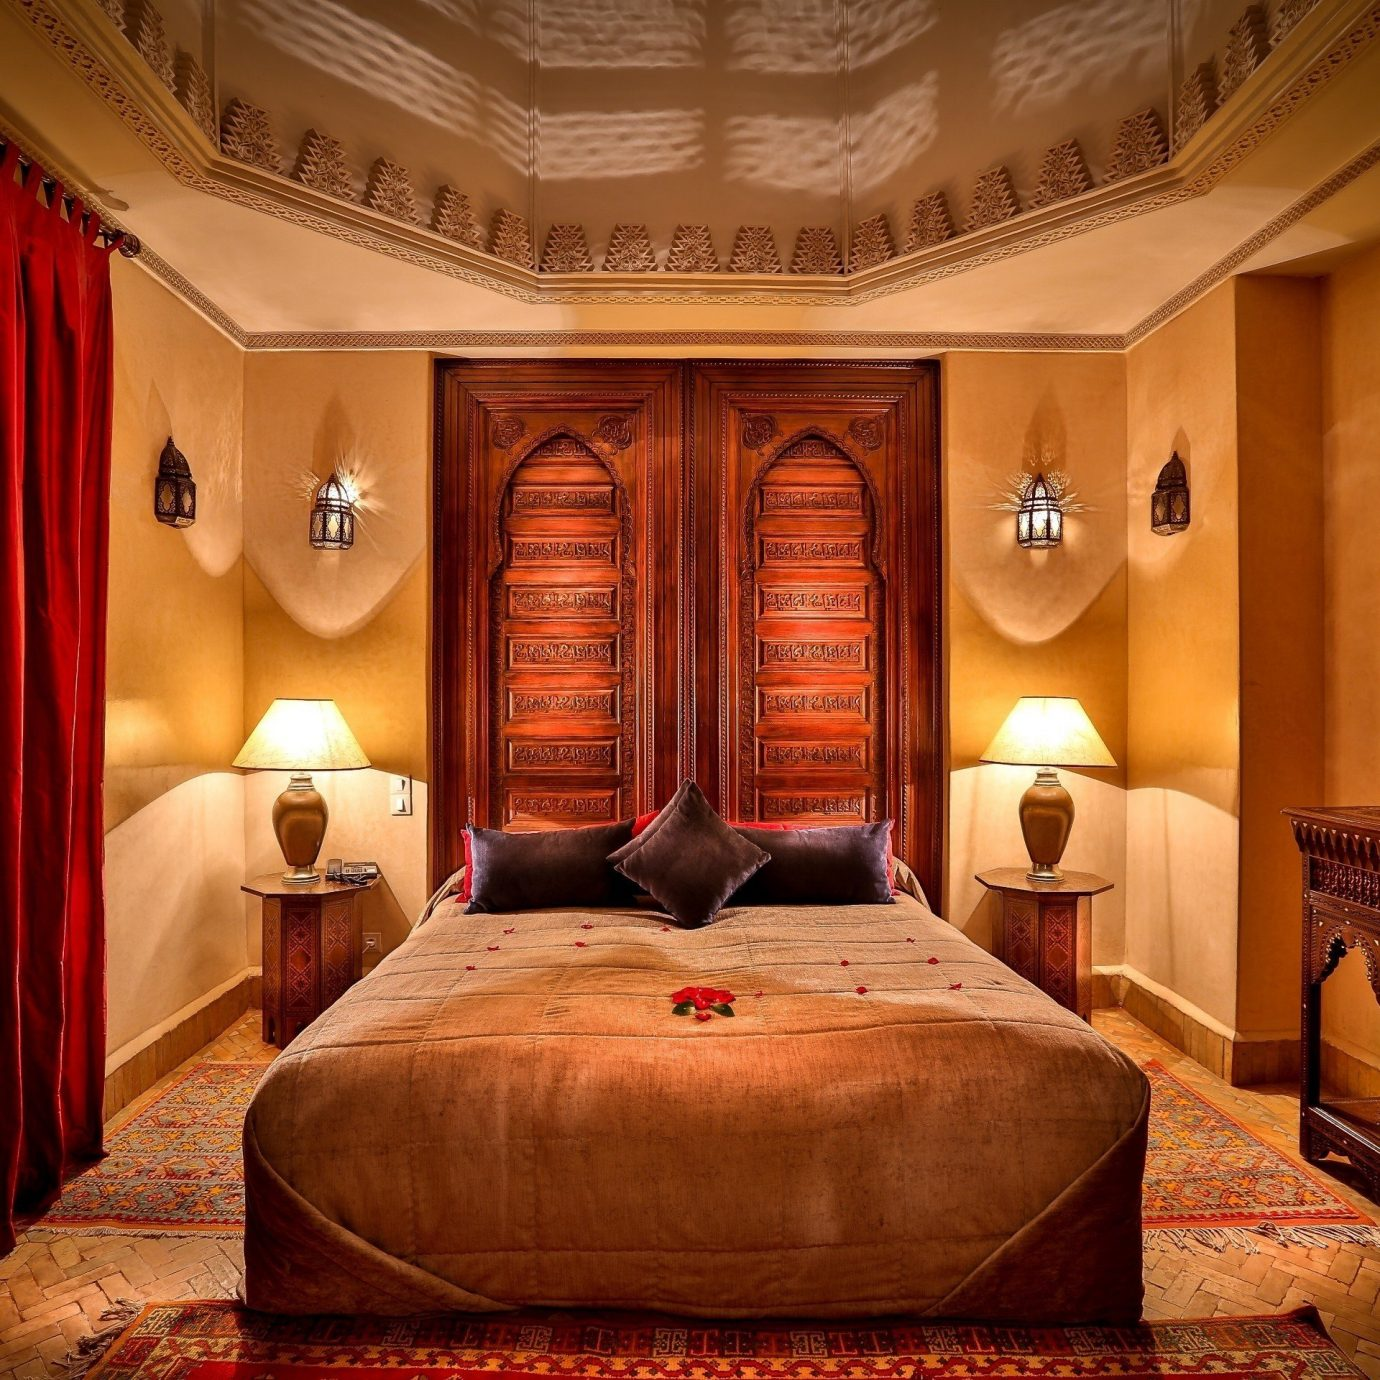 curtain Bedroom Suite mansion Lobby